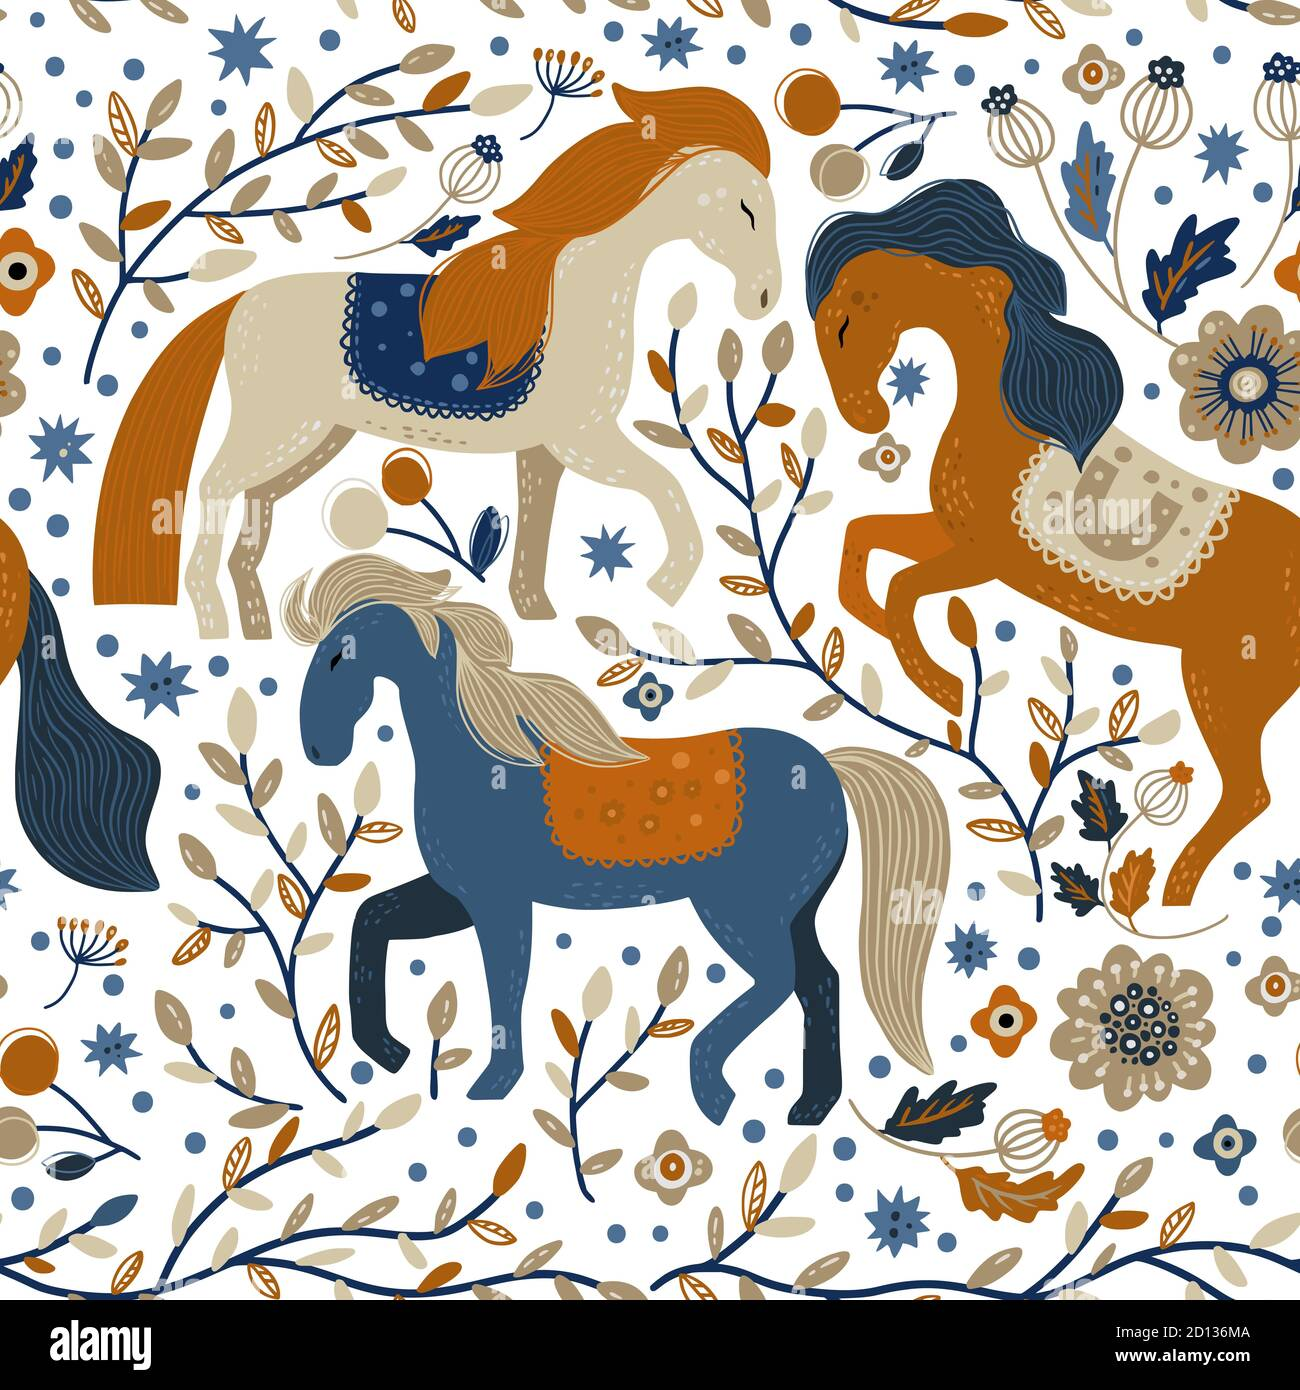 Nordic Scandinavian Horse Animal Seamless Vector Pattern Cartoon Ornate Detailed Mustangs Illustration Among Beautiful Nature On A White Background Kid Flower And Mustang Wallpaper Stock Vector Image Art Alamy